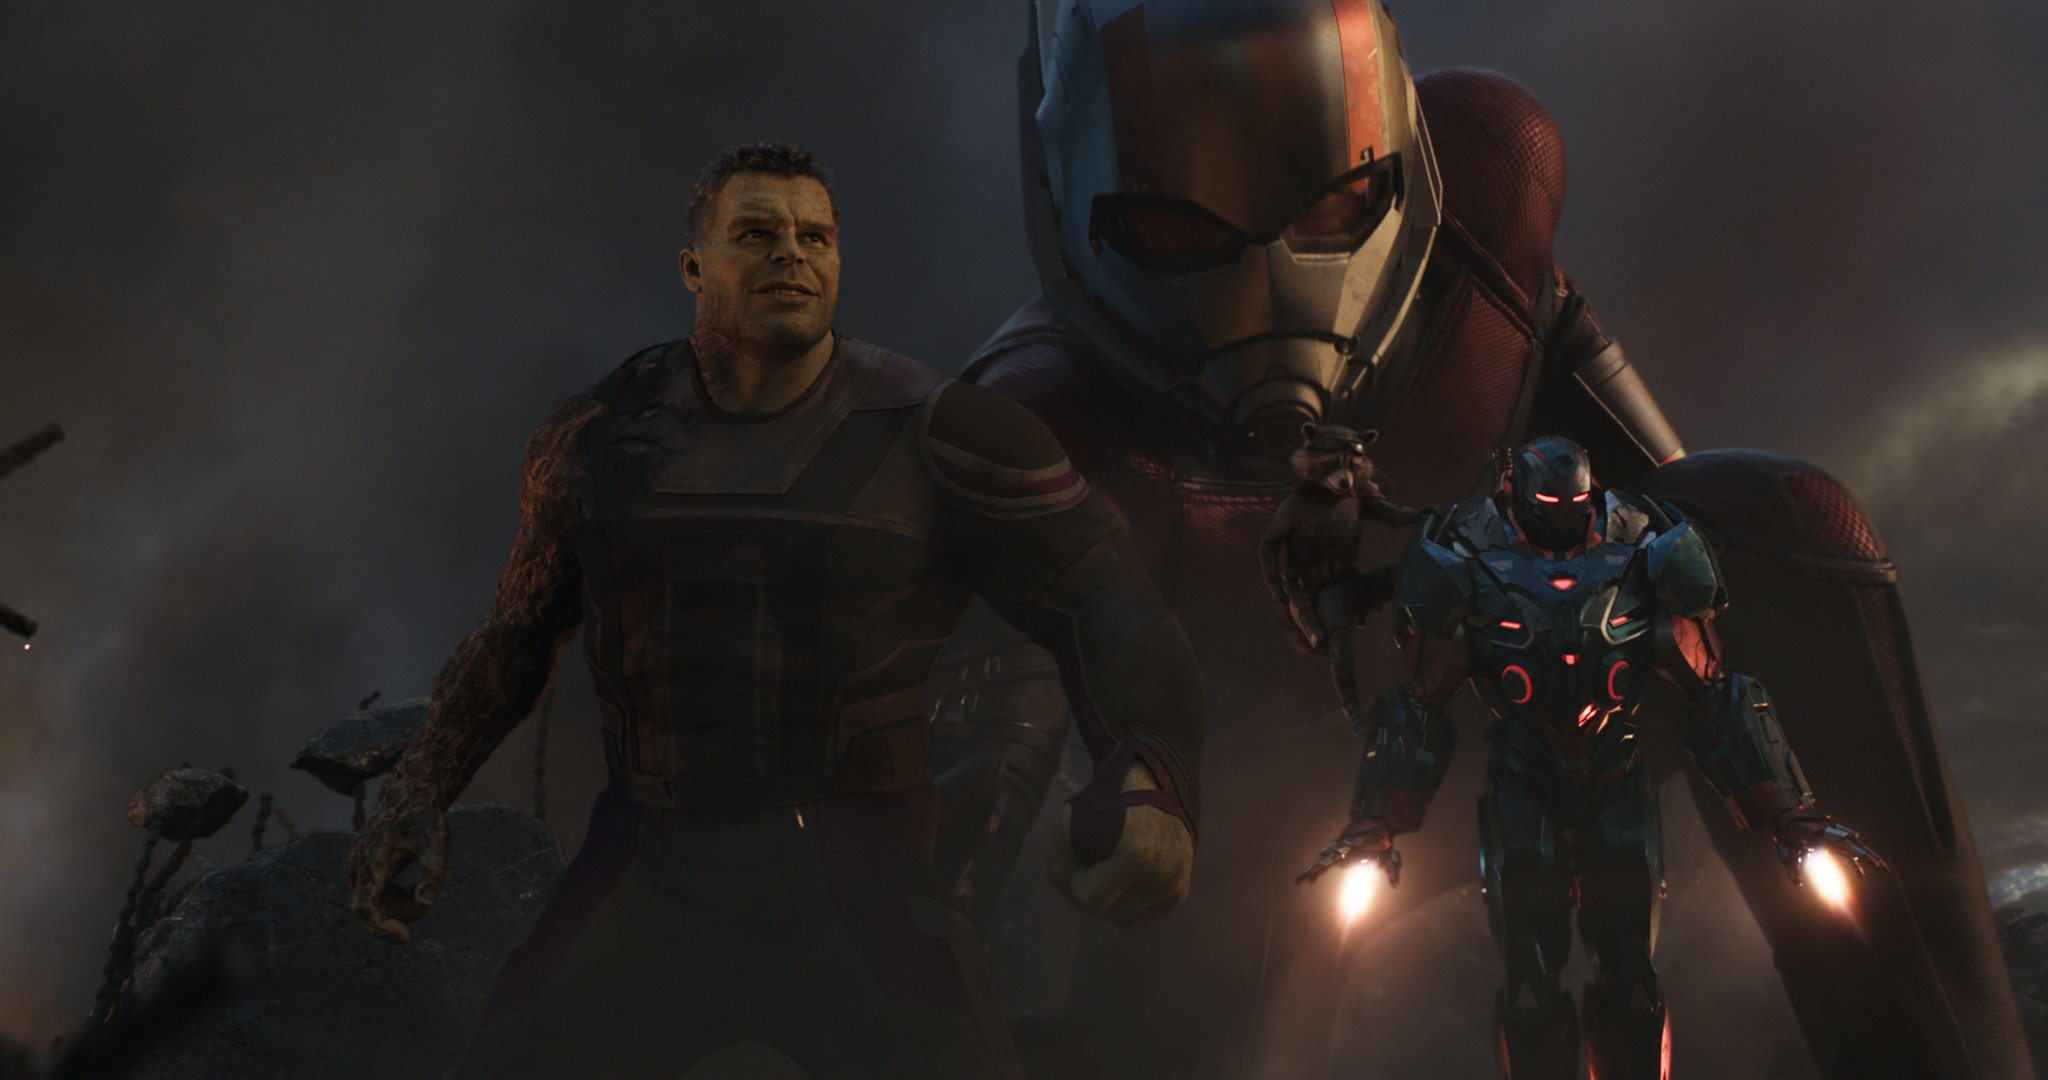 Photo du film Avengers: Endgame avec Hulk, Ant-Man, Rocket et War Machine